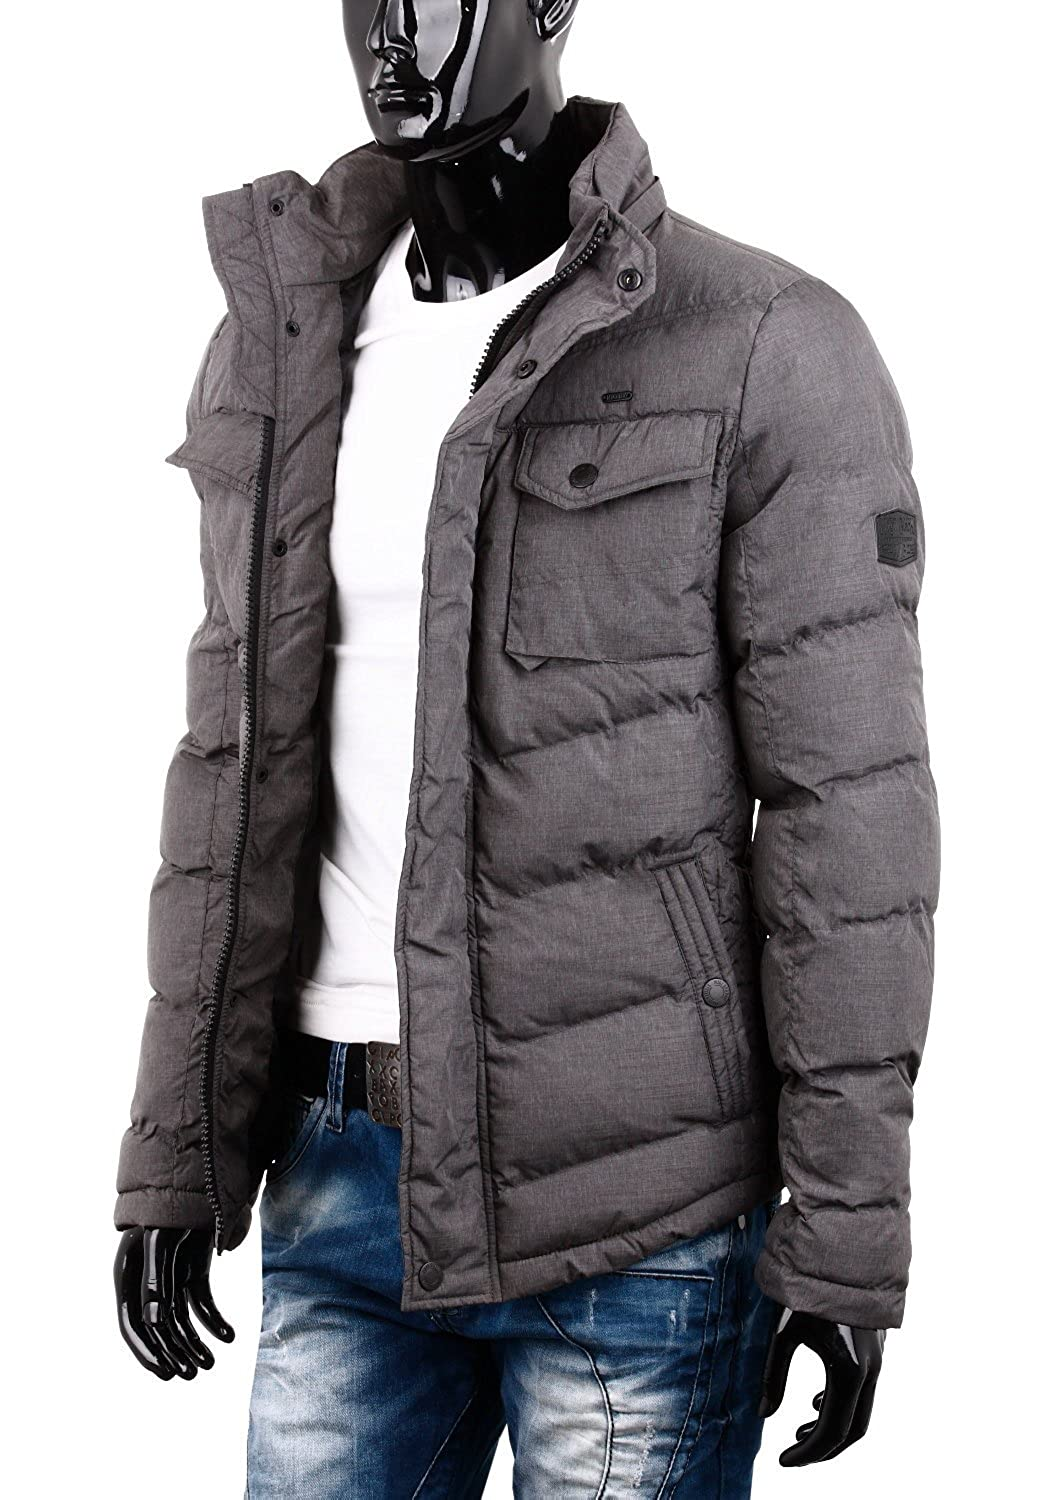 MZGZ Men's jacket quilted padded 15328-80 Lavezi